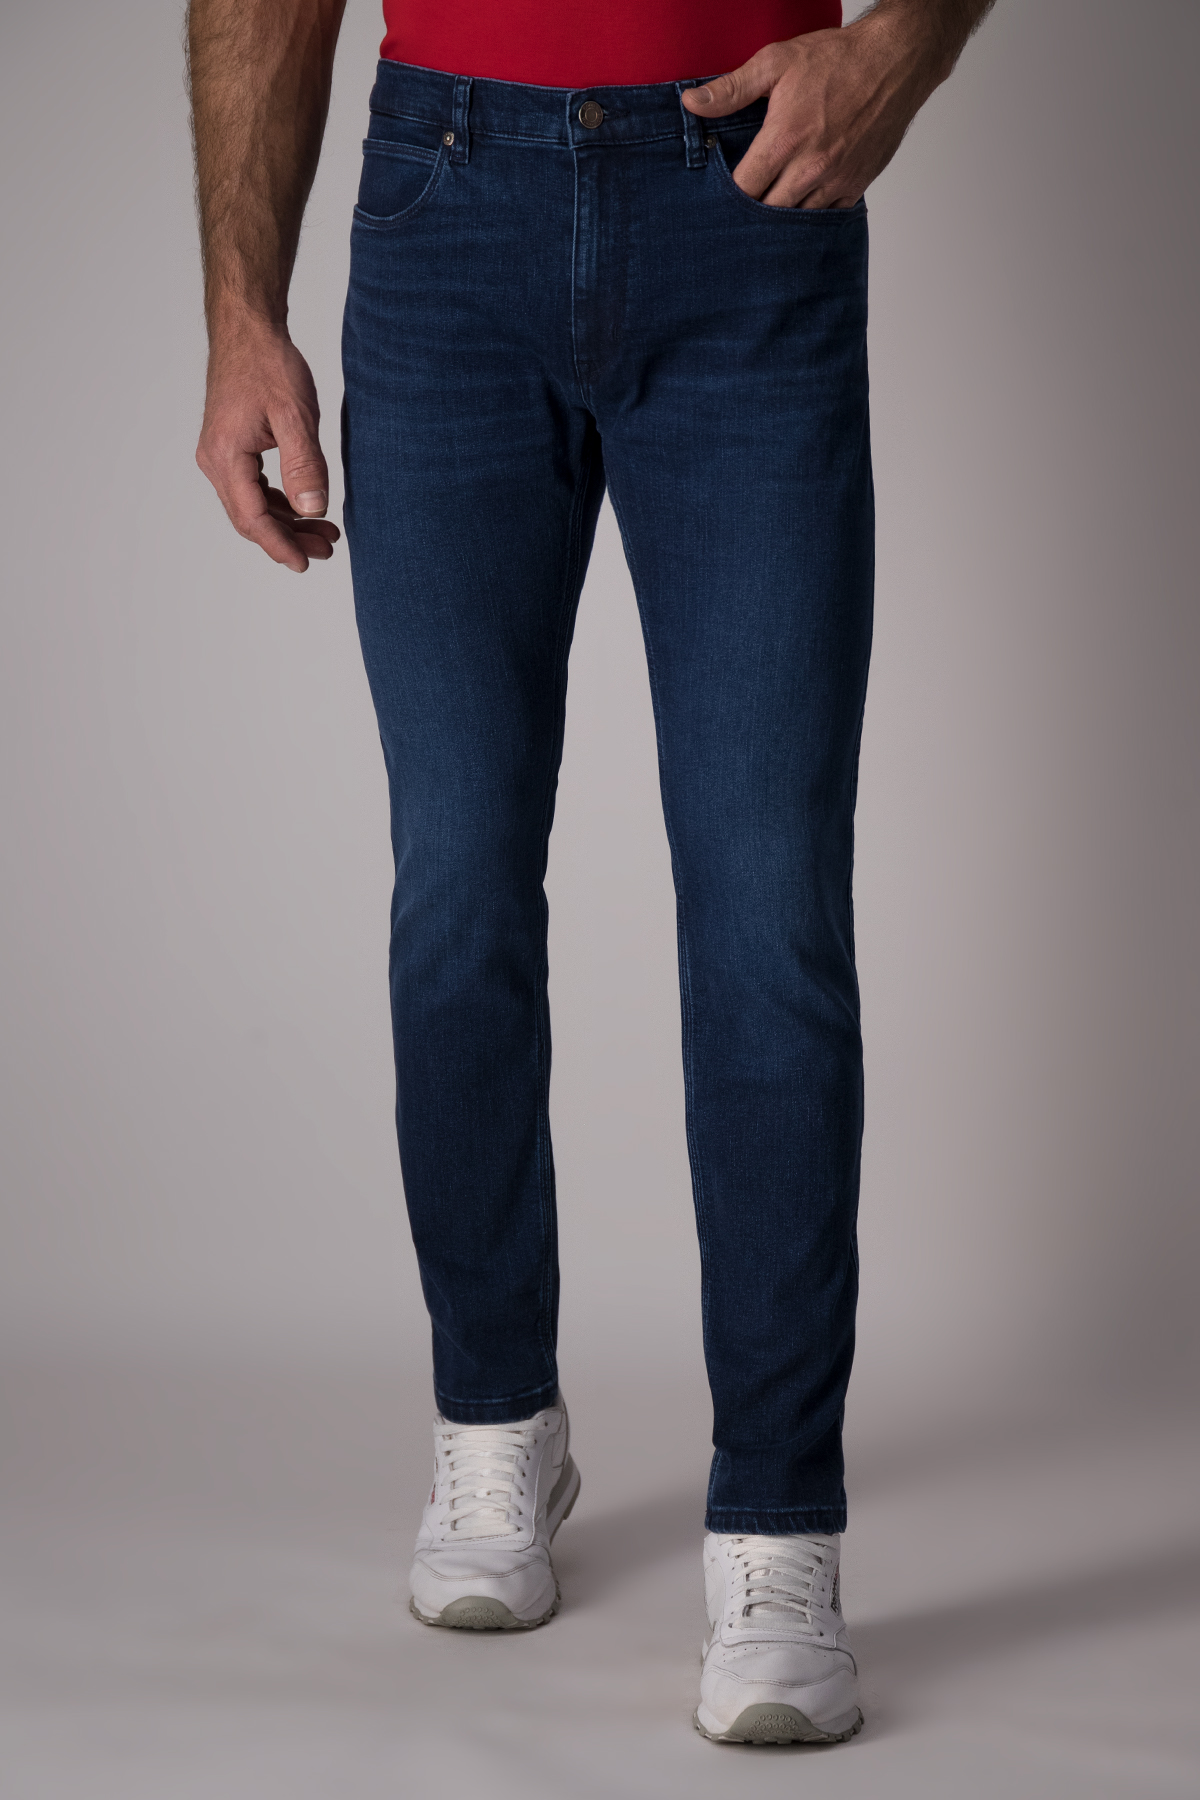 Jeans Hugo Boss color azul, slim fit.